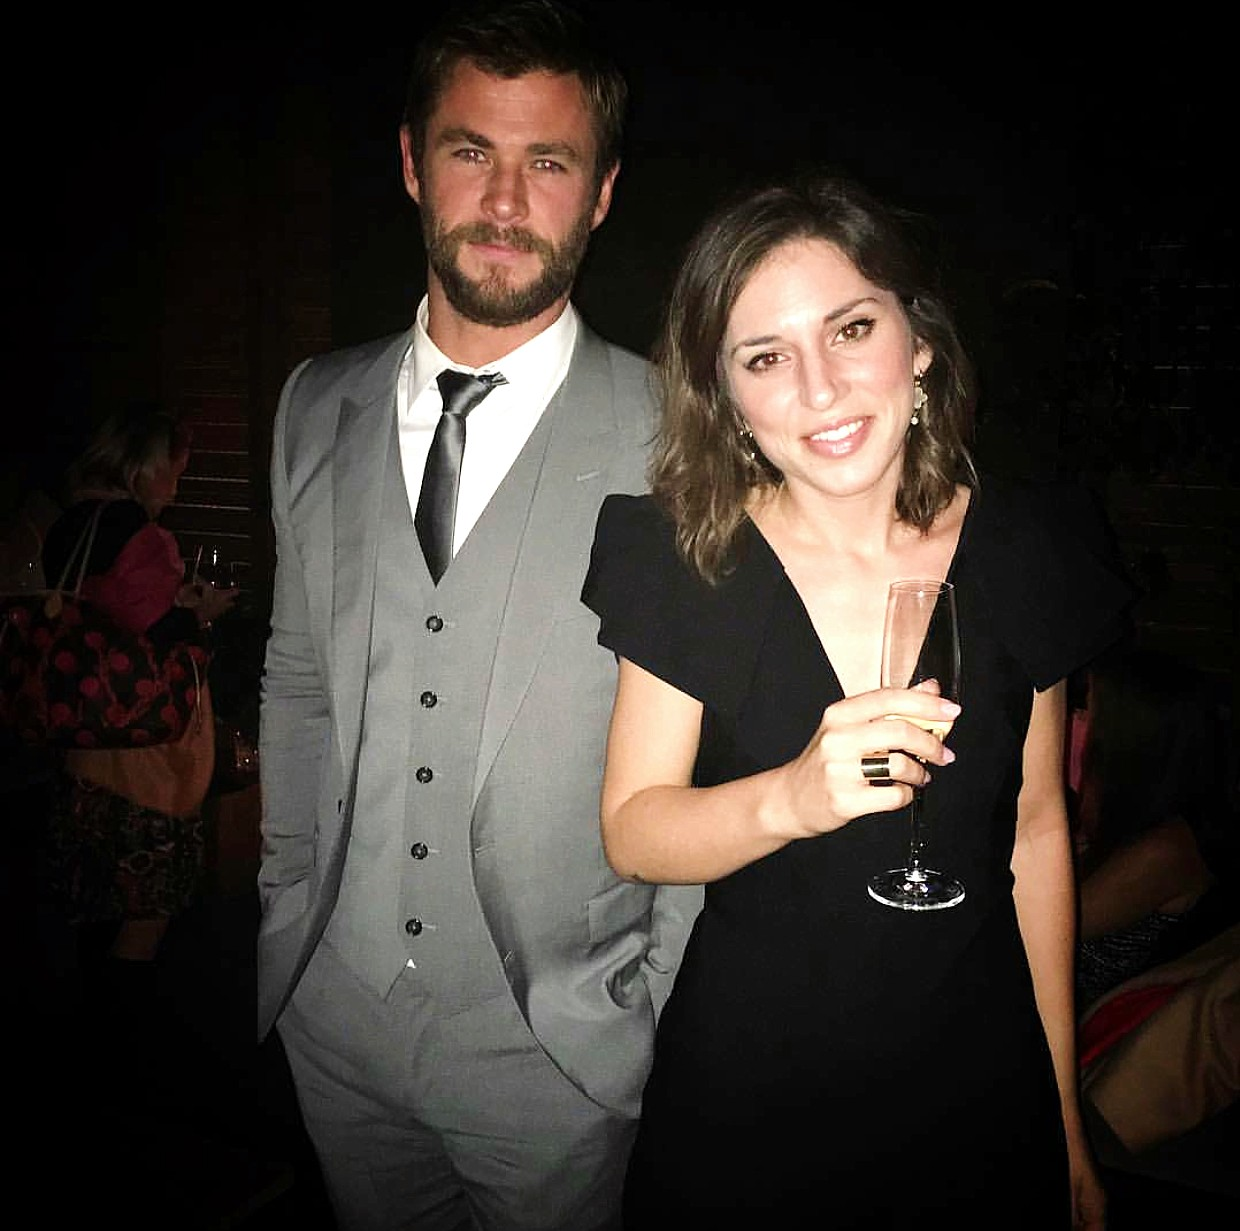 The Huntsman Winter's War, movie premiere, Chris Hemsworth, after party